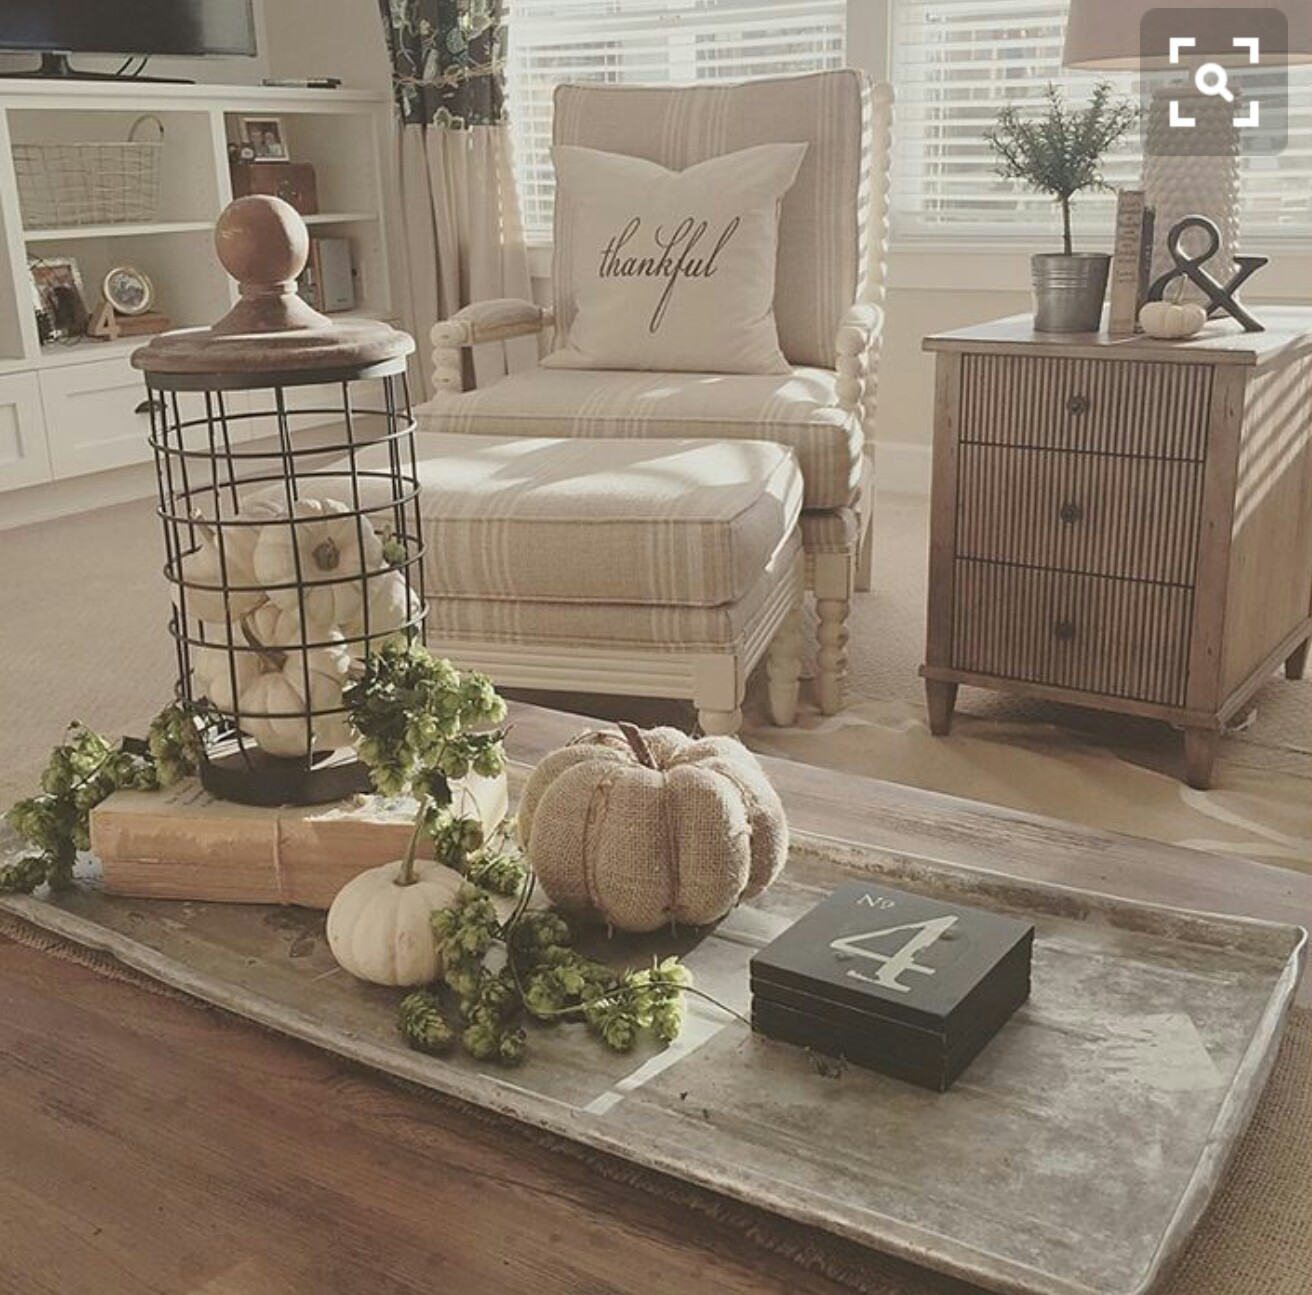 I love the light and airy feel of this decor. One day….once the kids are gone….